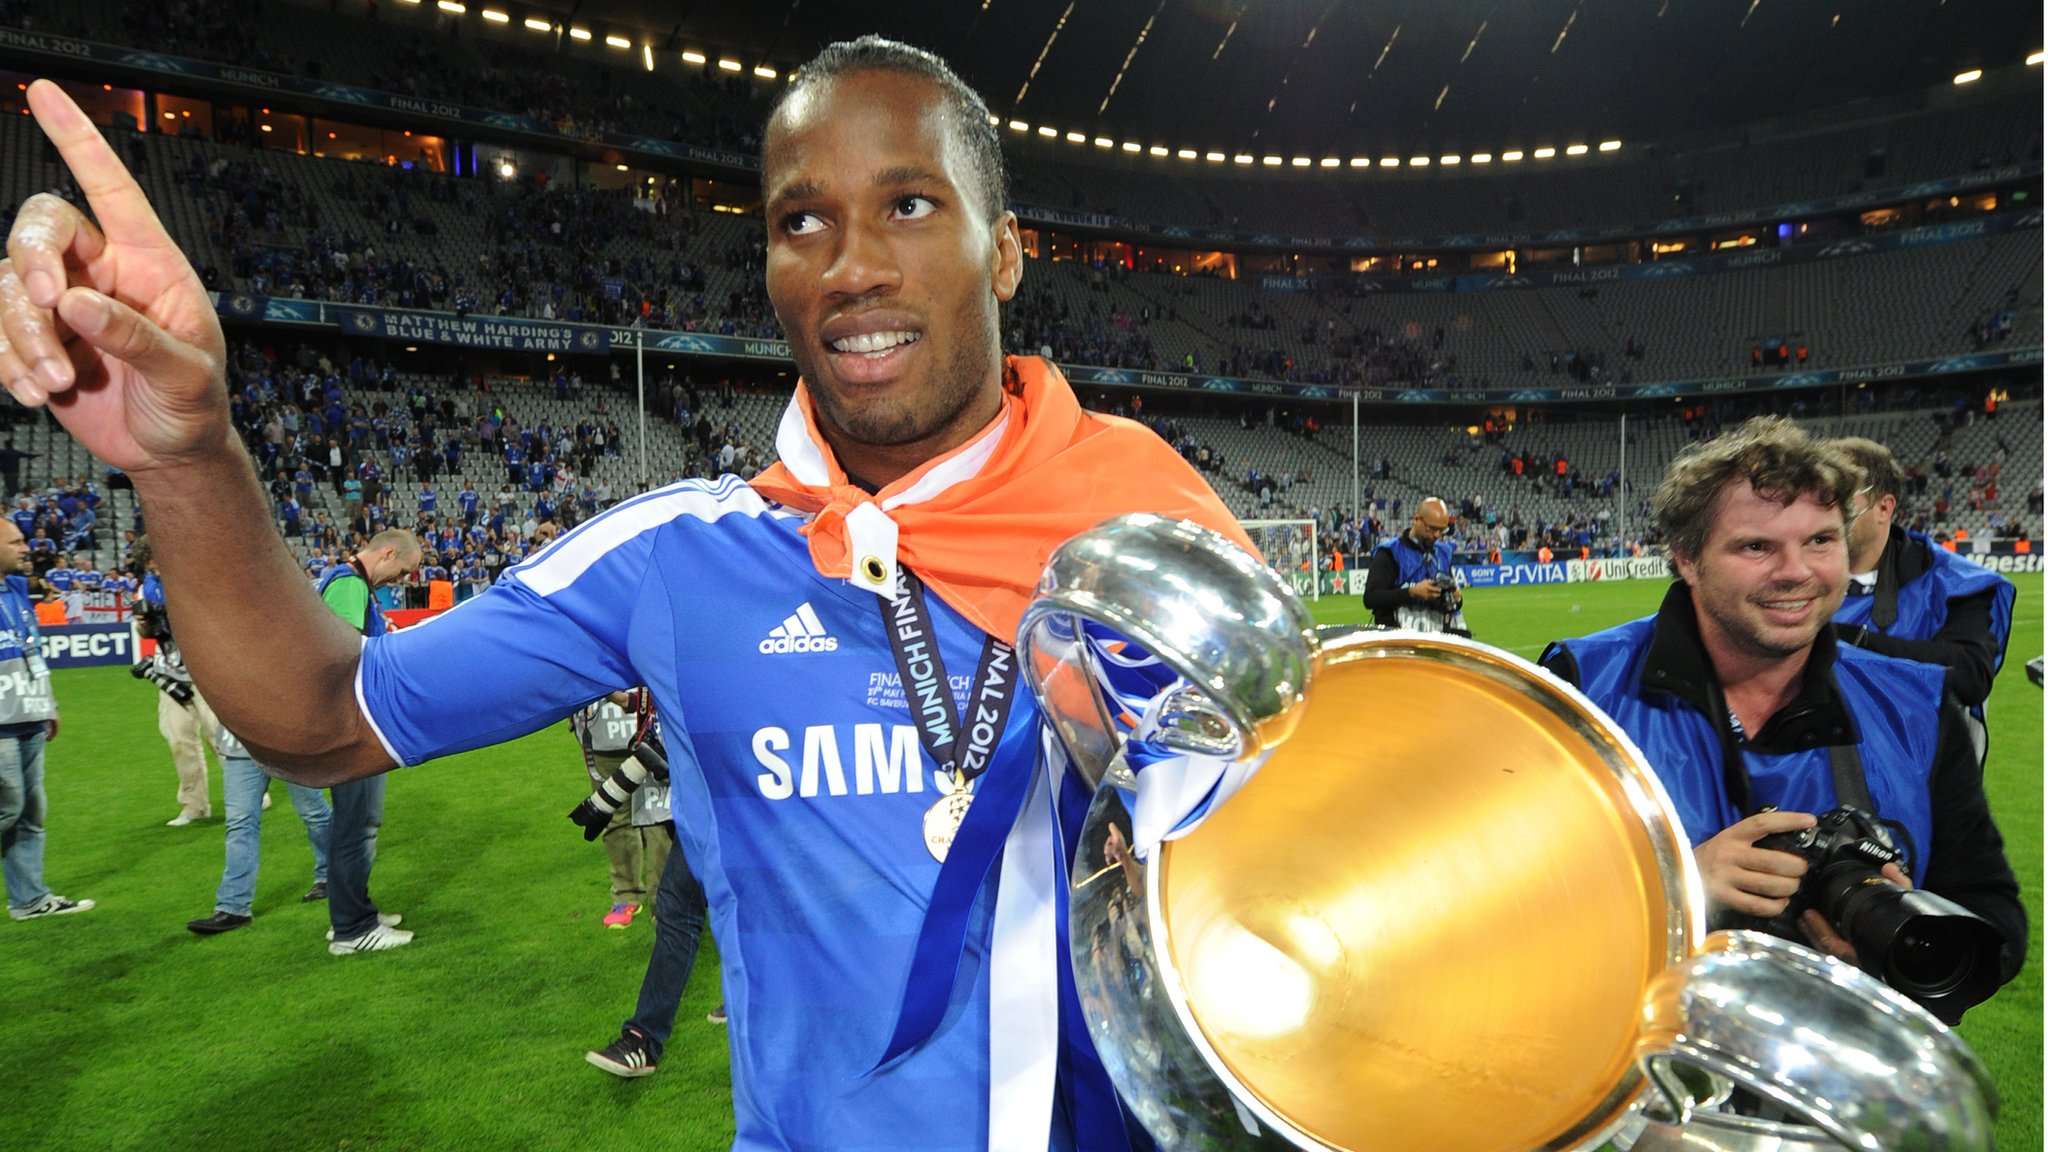 Didier Drogba: Chelsea and Ivory Coast legend retires from playing